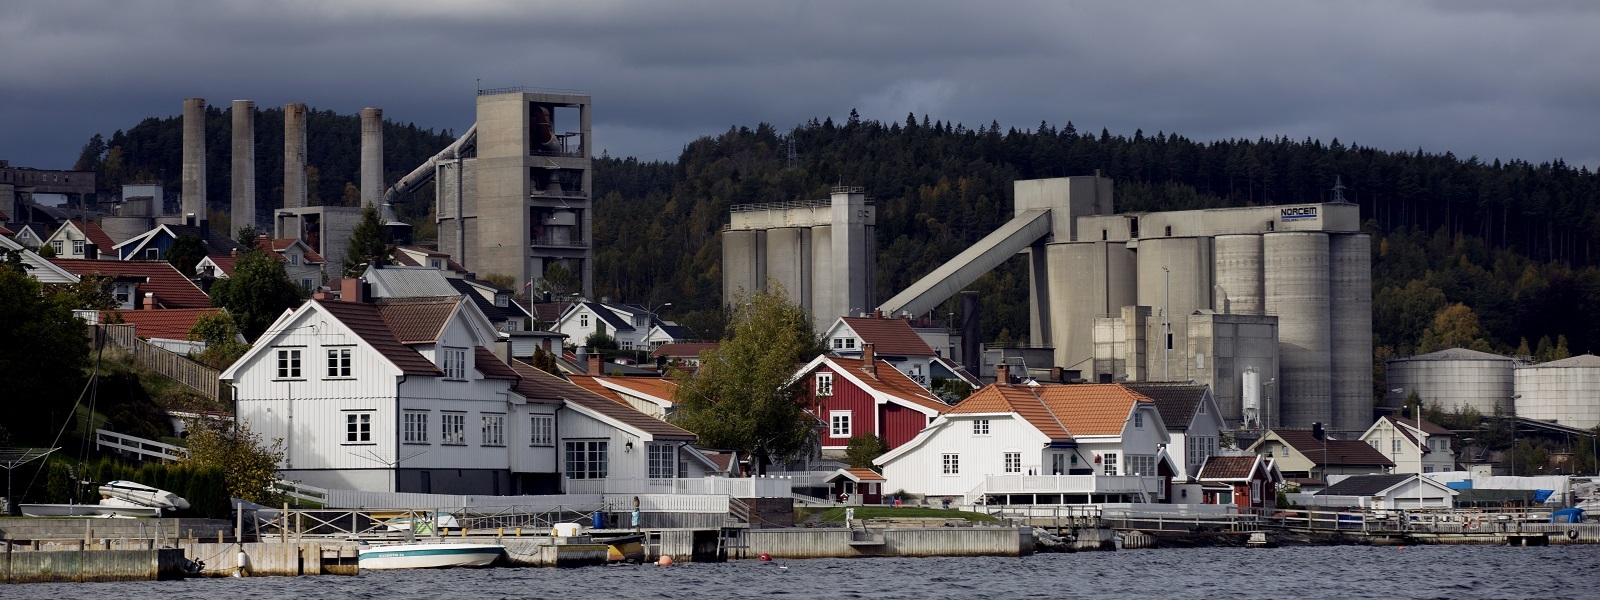 Cement Factory in Norway